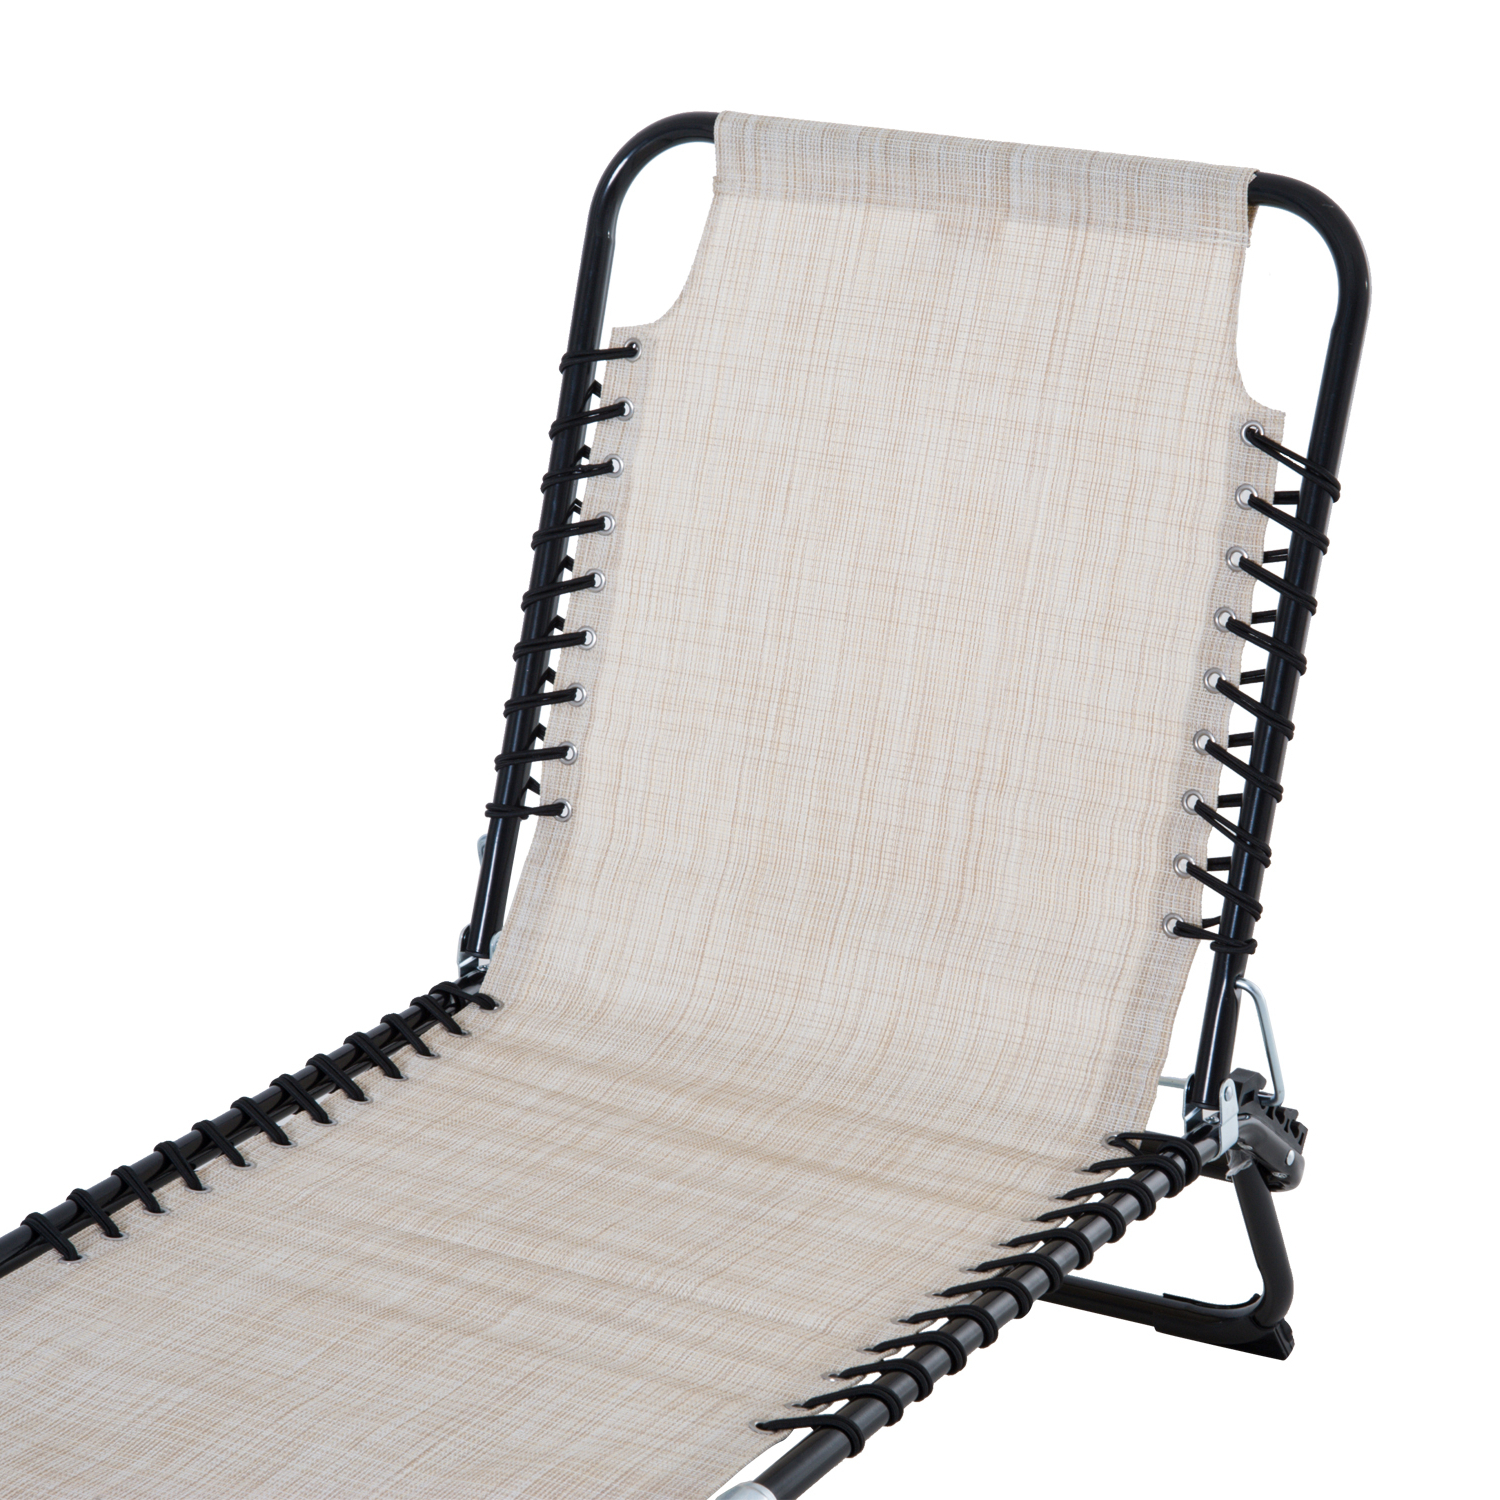 2020 Outsunny Portable 3 Position Reclining Folding Beach Chaise Lounge Chair For 3 Position Portable Folding Reclining Beach Chaise Lounges (View 7 of 25)